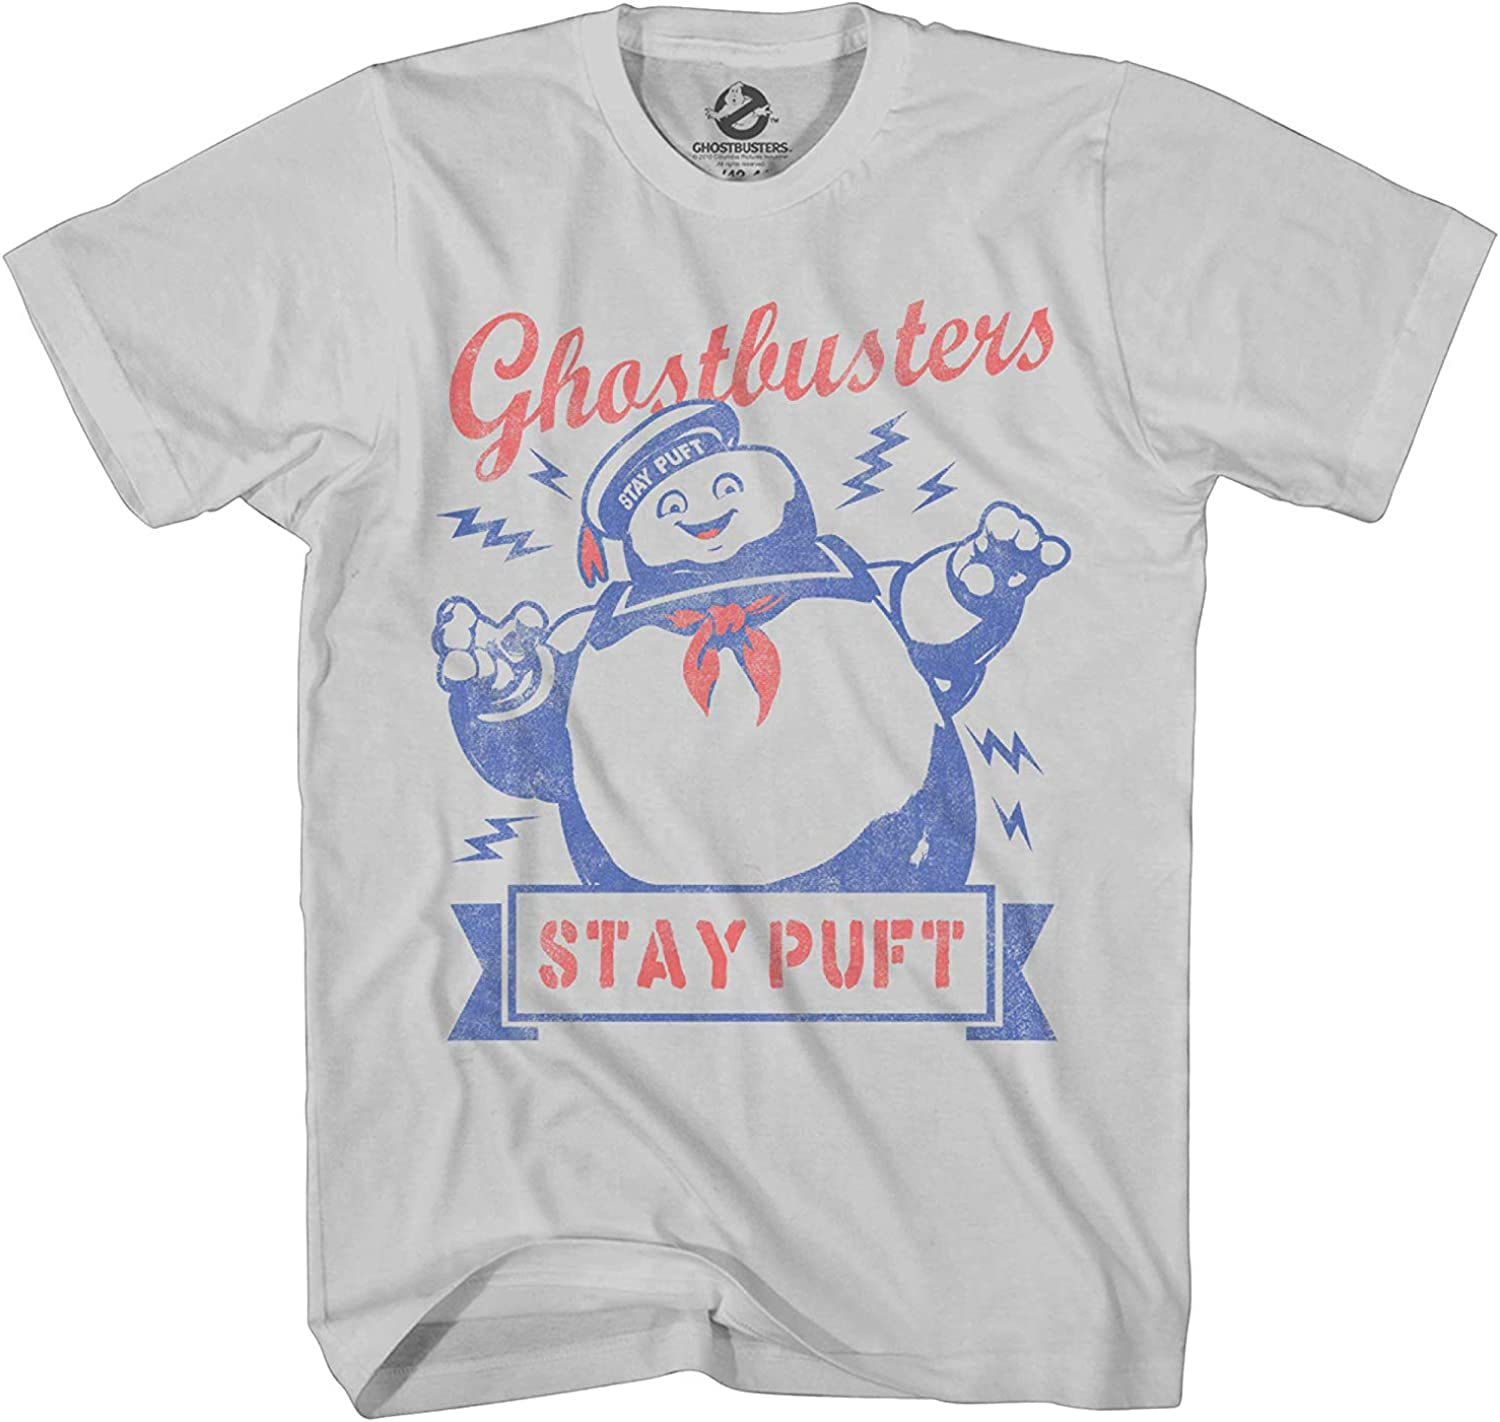 Ghostbusters Mens Stay Puft Shirt Stay Puft Logo Tee Shirt Graphic T-Shirt